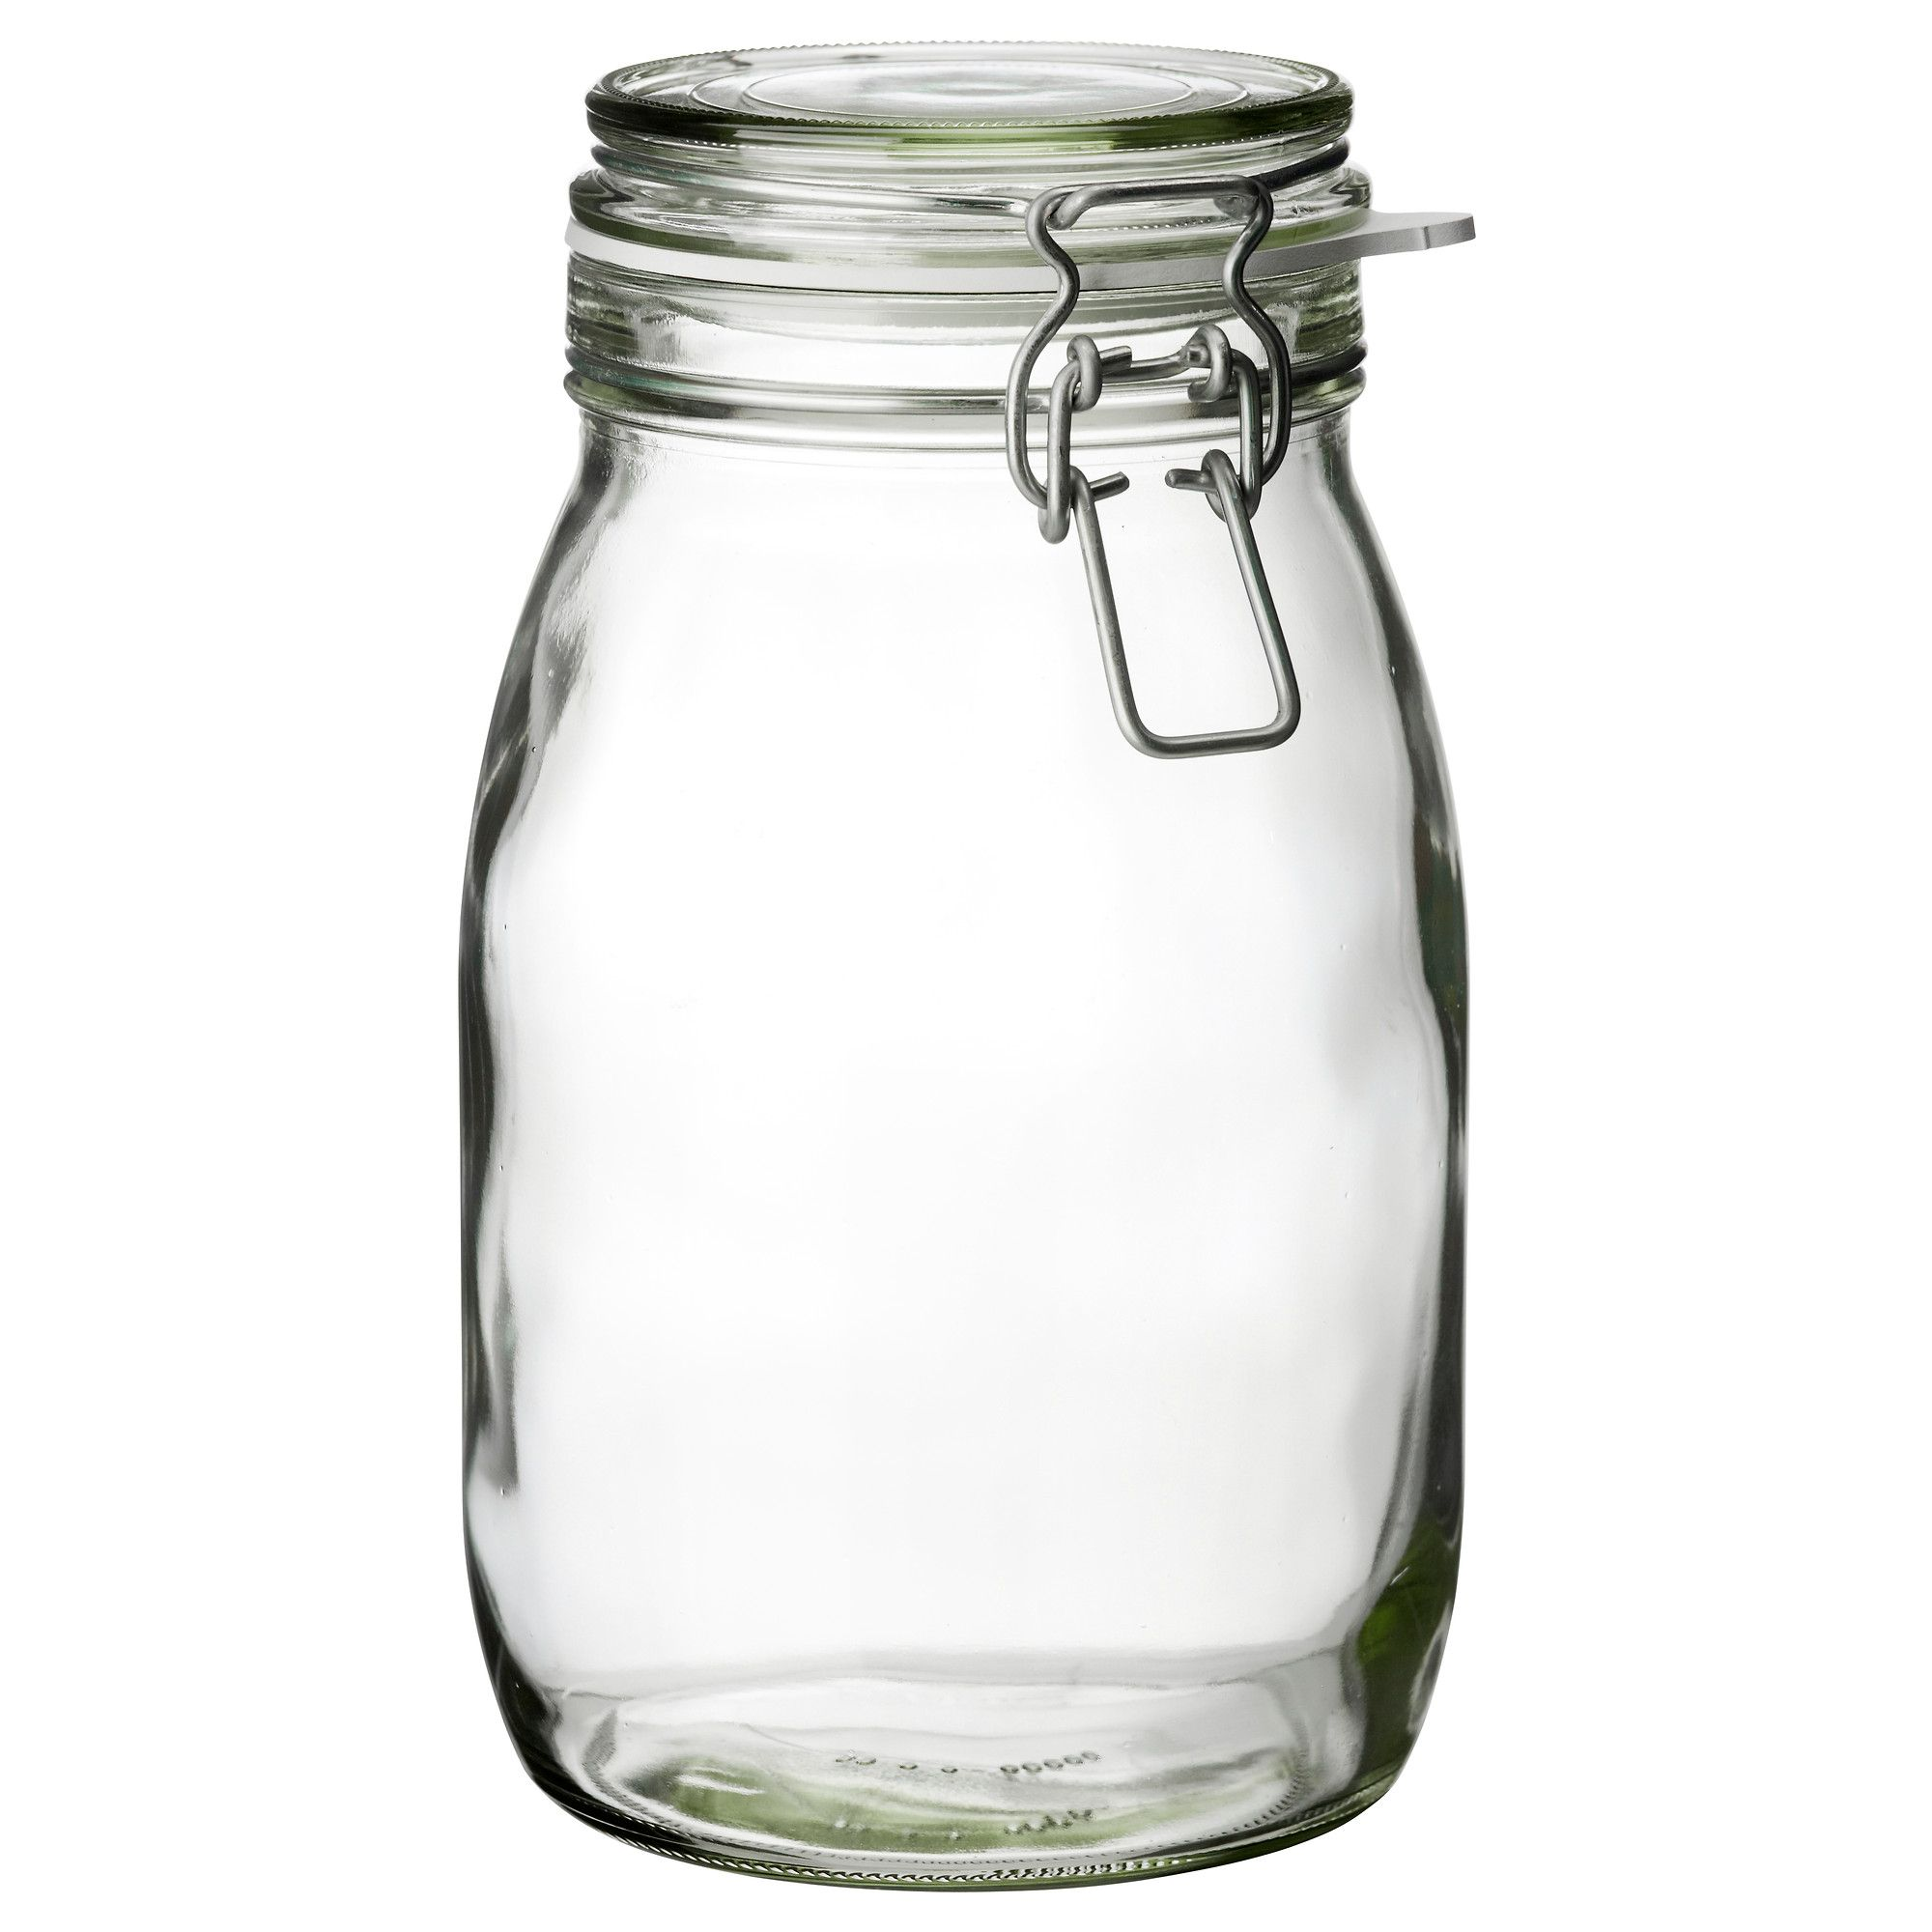 korken jar with lid clear glass kitchens pantry and ikea shopping korken jar with lid clear glass